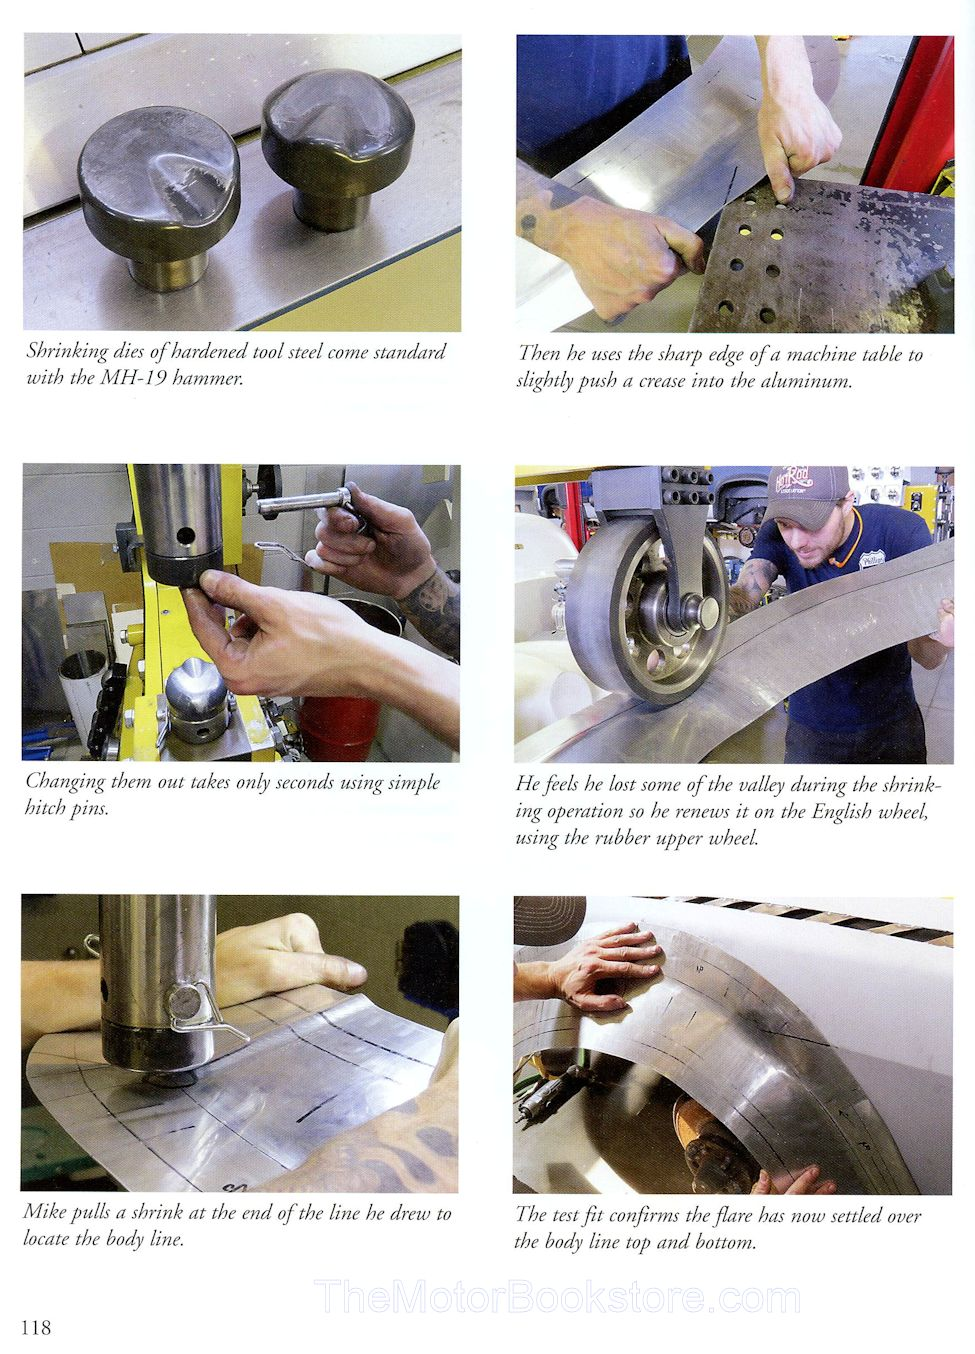 Power Hammers Sheet Metal Fabrication Sample Page - WP360